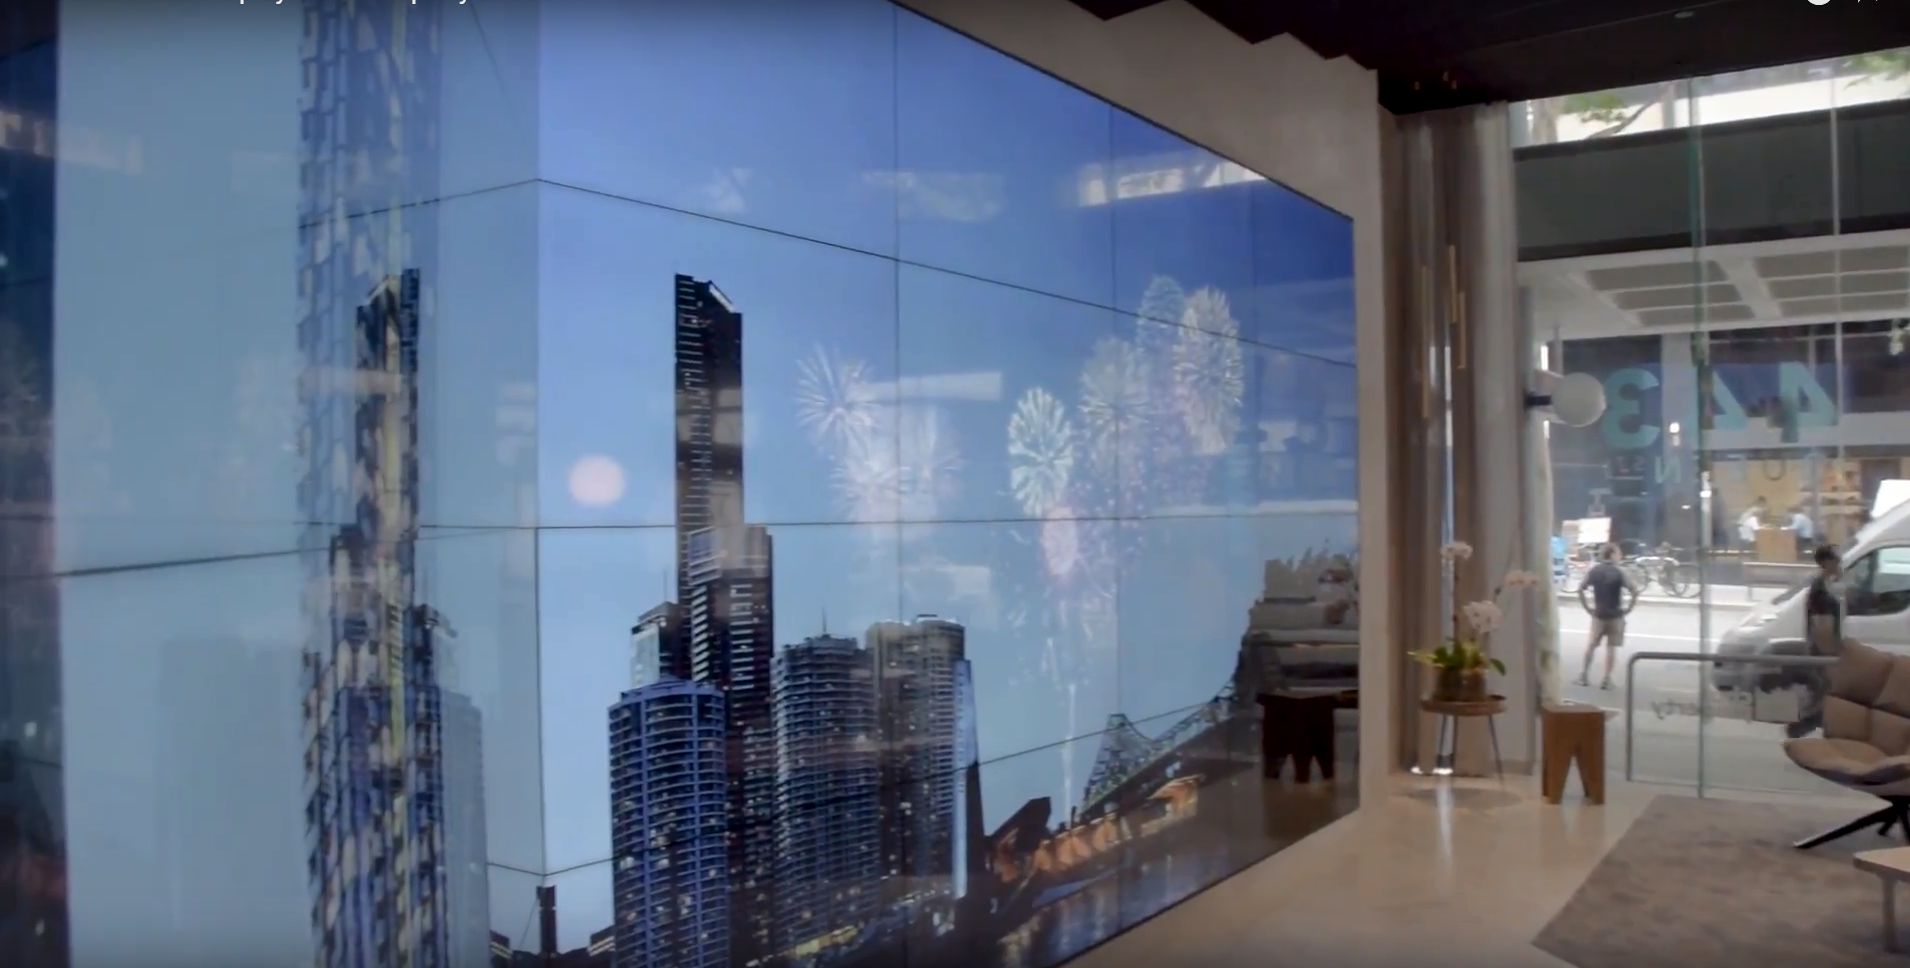 Interactive 10K Video Wall Made of LG Screens